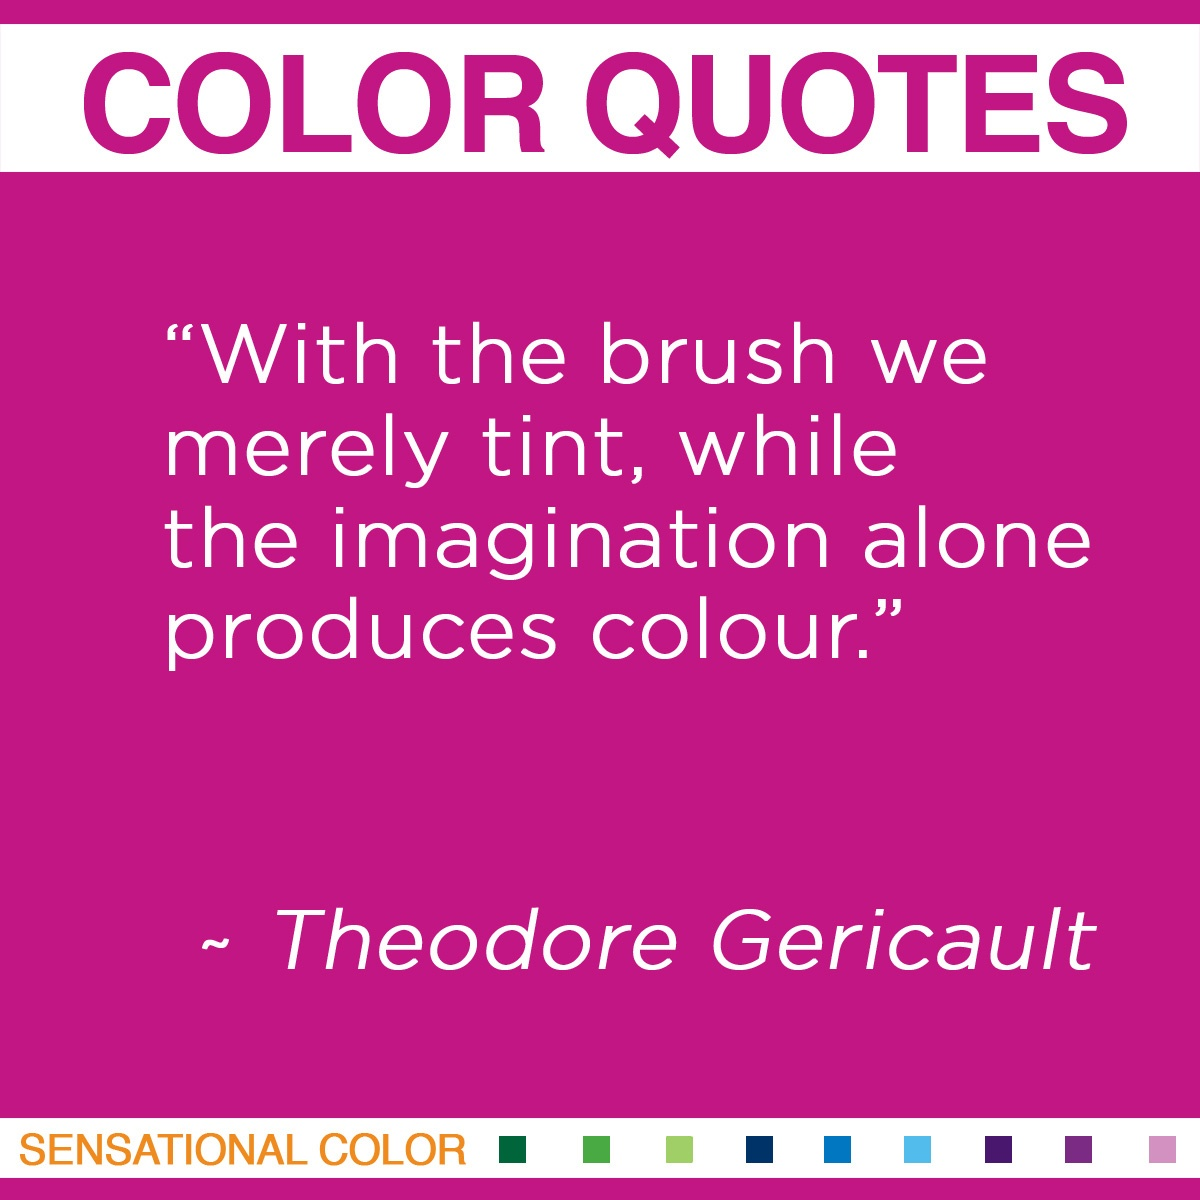 """With the brush we merely tint, while the imagination alone produces colour."" - Theodore Gericault"